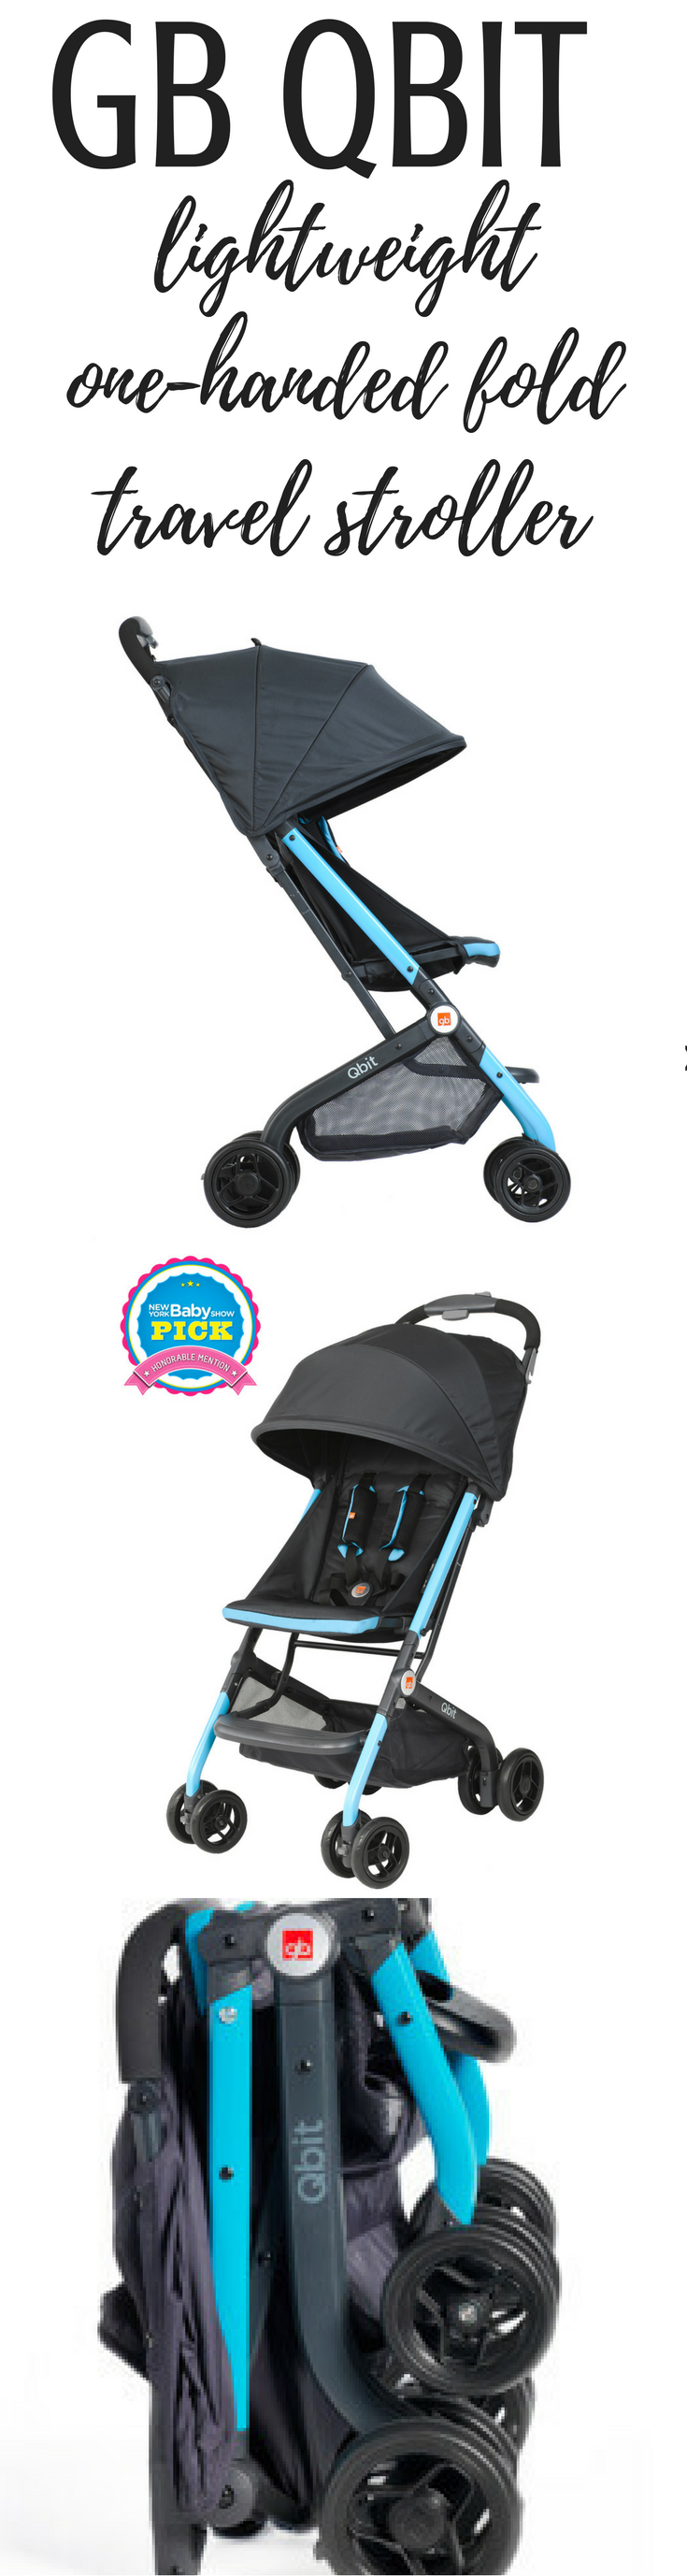 GB QBit reclining travel stroller with one handed fold, upright fold